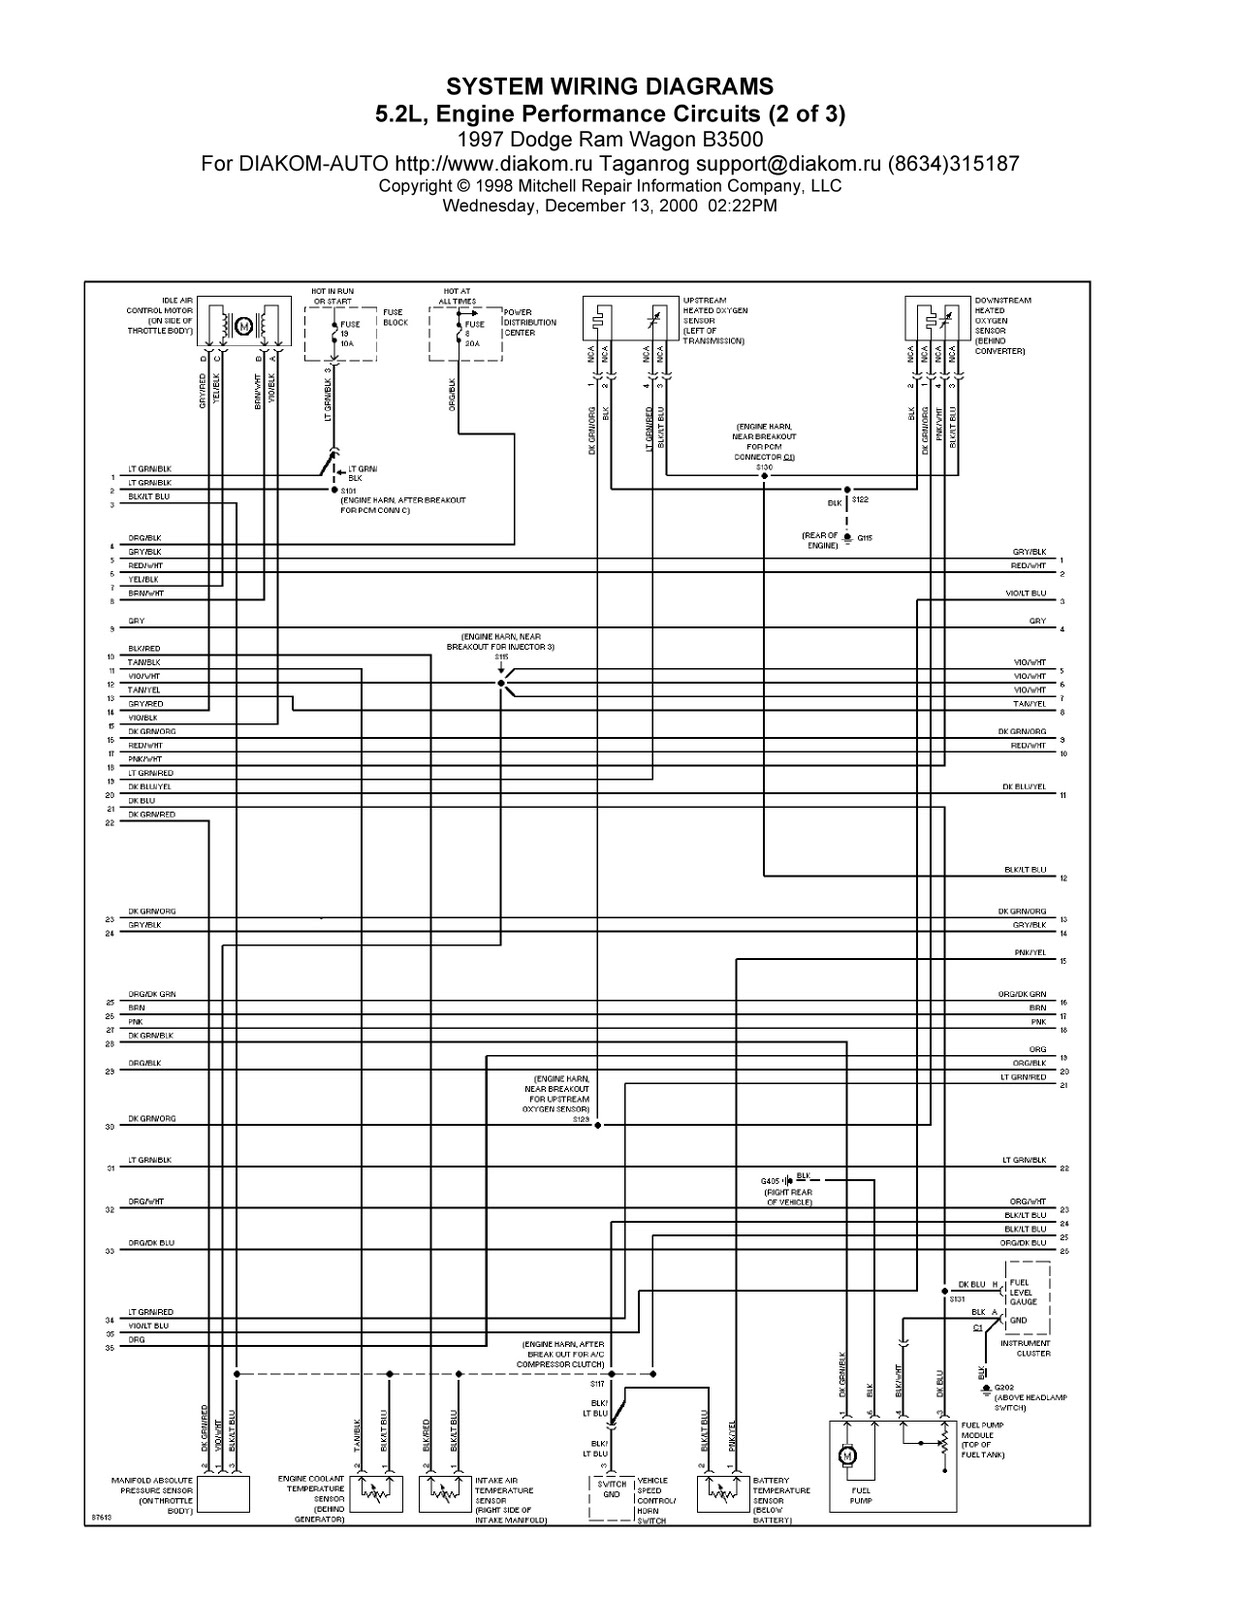 medium resolution of dodge power wagon engine harness diagram wiring library1997 dodge ram wagon b3500 system wiring diagram 5